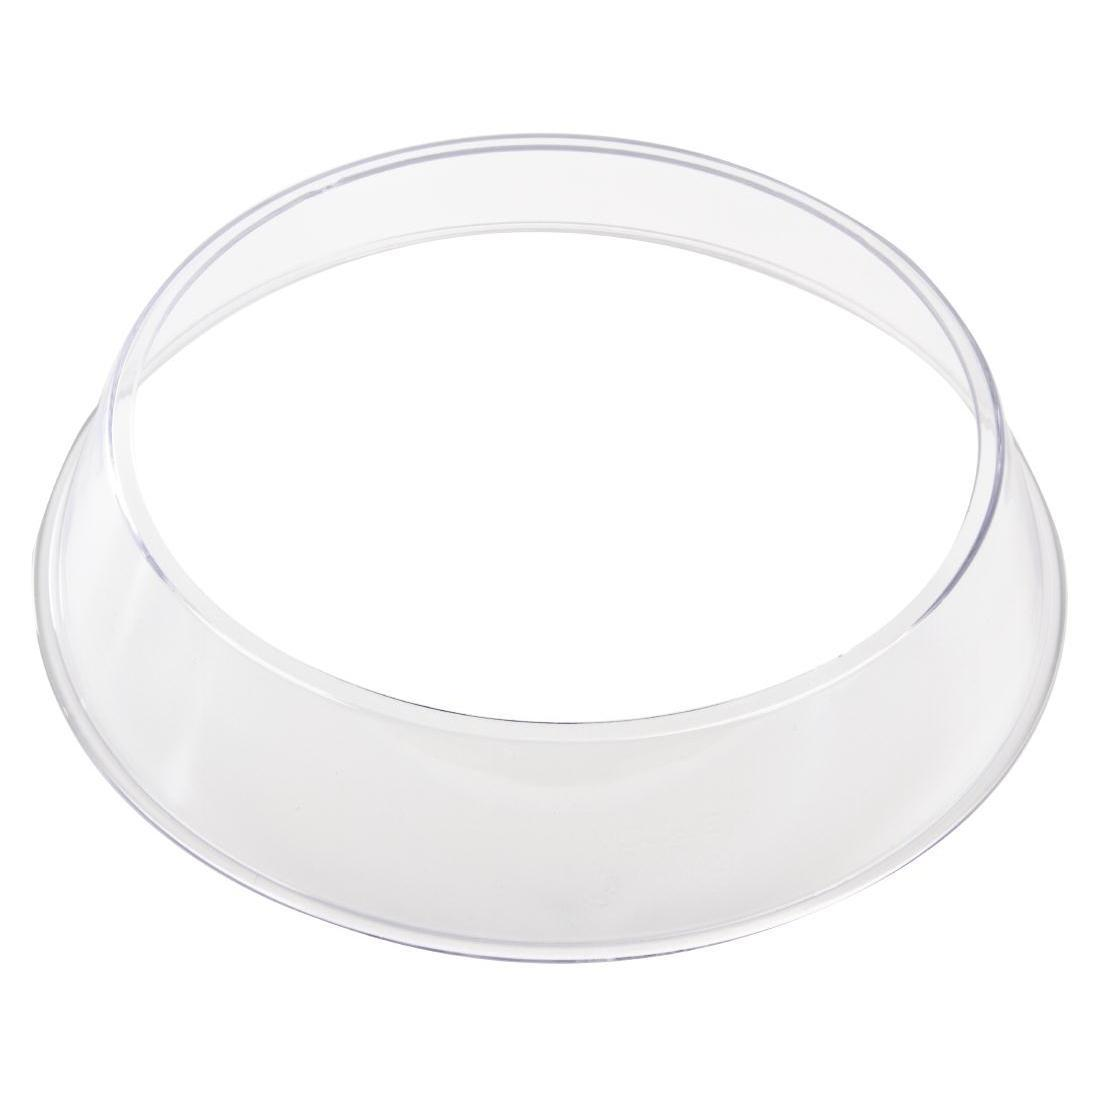 Vogue Polycarbonate Plate Ring - Each - K481